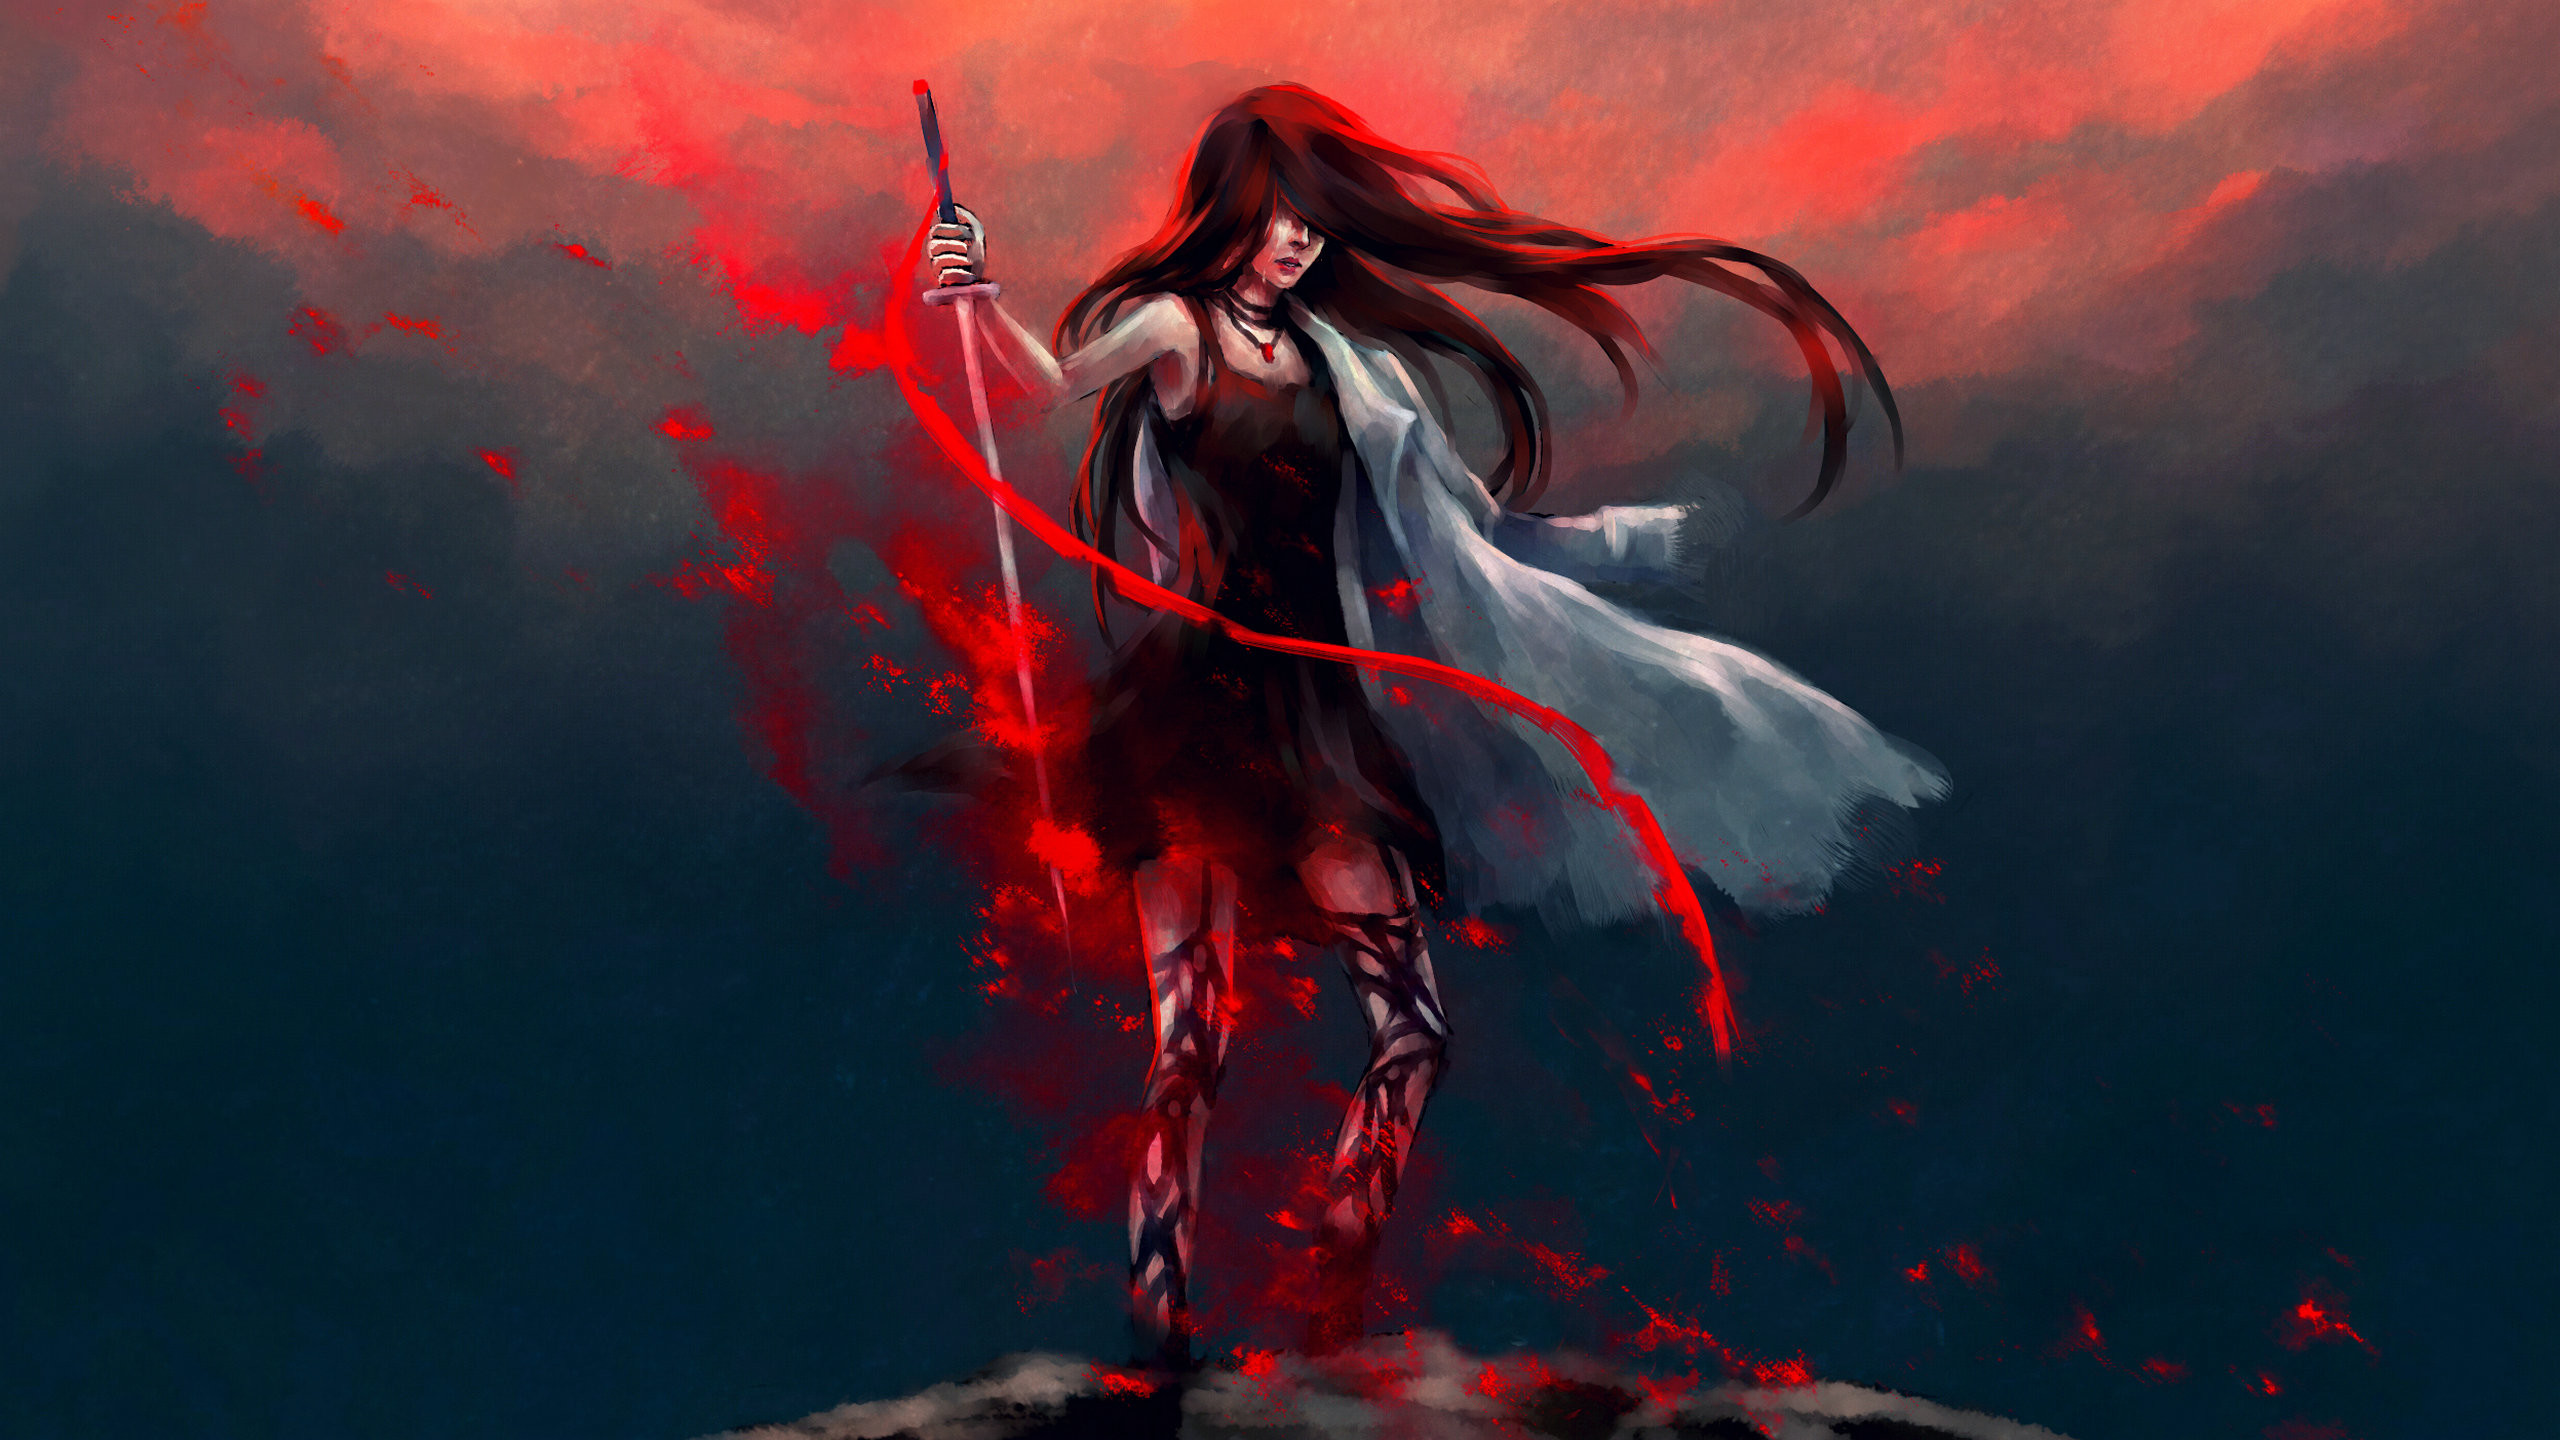 Anime Girl Katana Warrior With Sword Hd Anime 4k Wallpapers